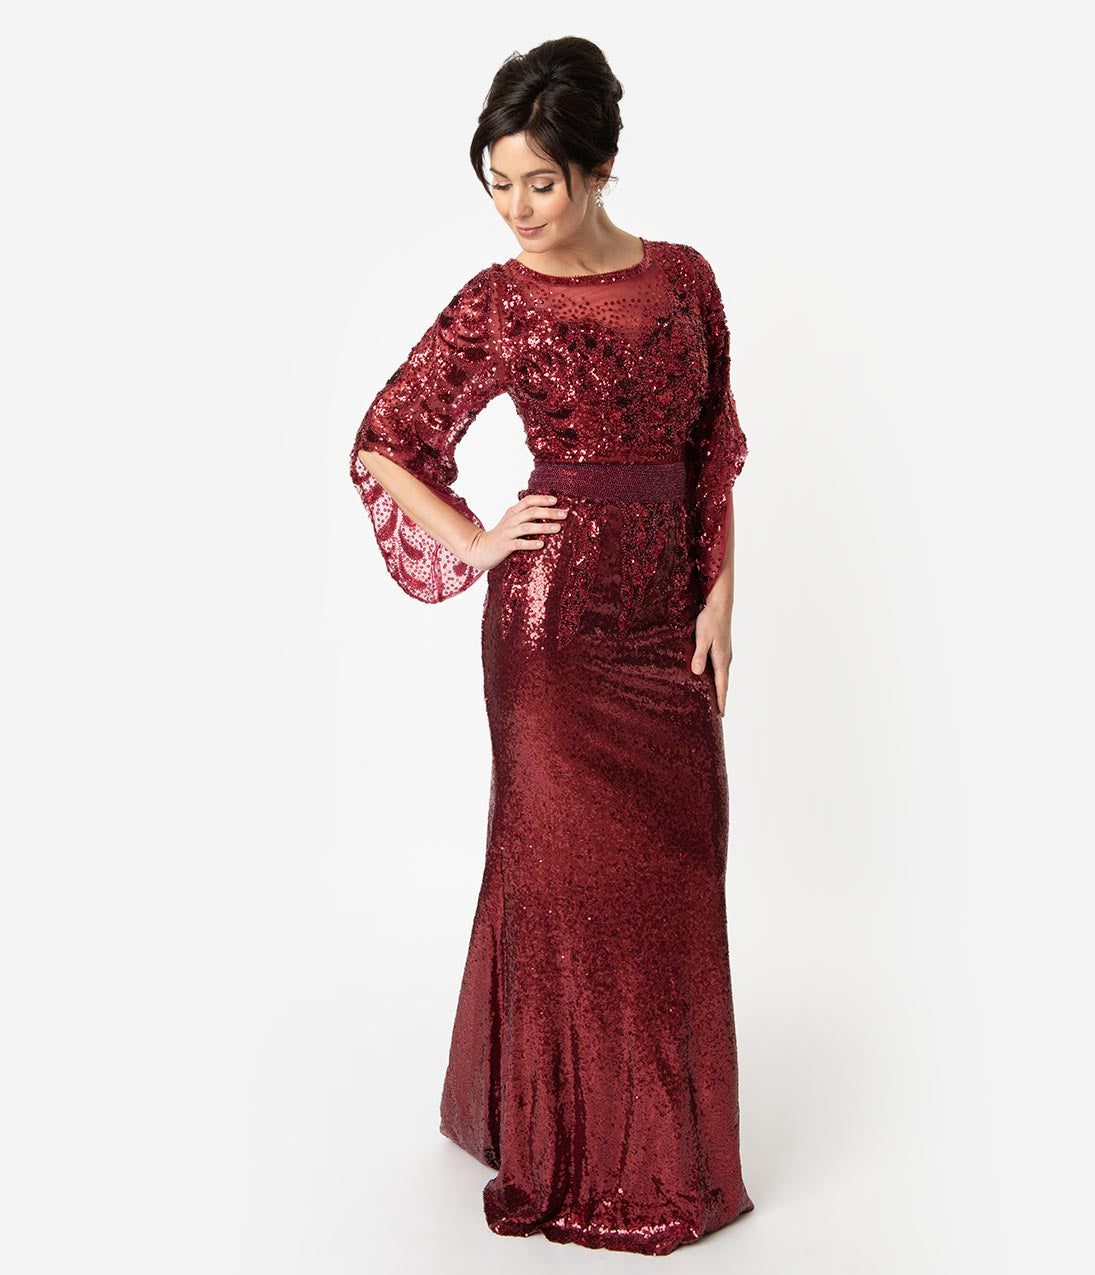 Vintage Christmas Gift Ideas for Women Burgundy Red Sequin Open Bell Sleeved Fitted Gown $240.00 AT vintagedancer.com